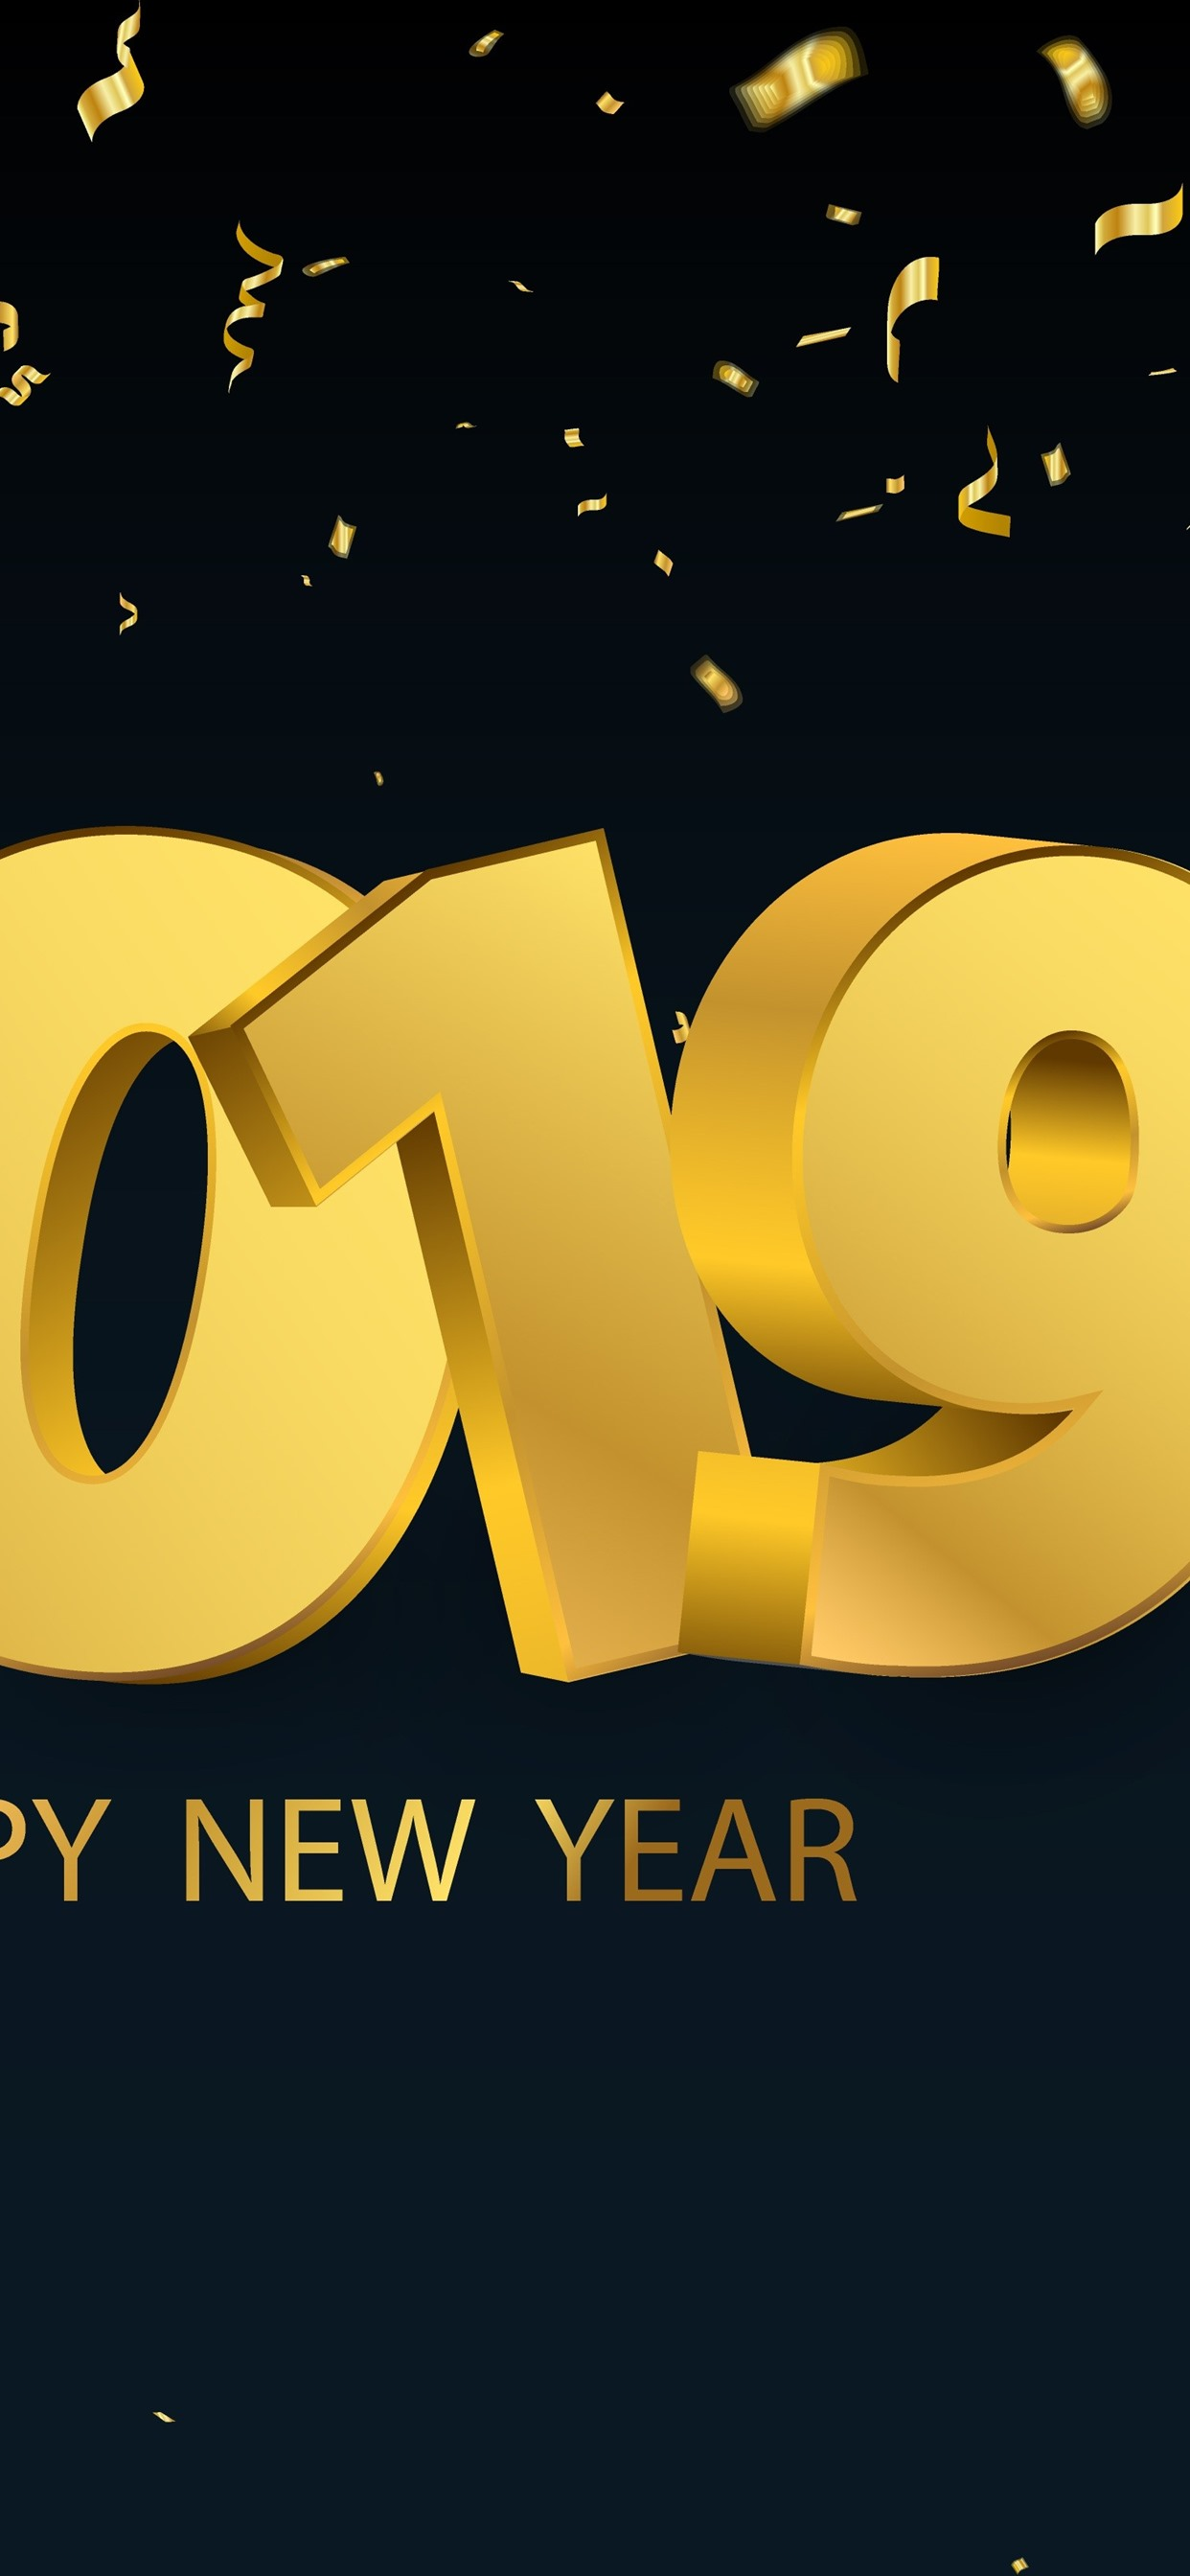 Happy New Year 2019 Golden Style 1242x2688 Iphone Xs Max